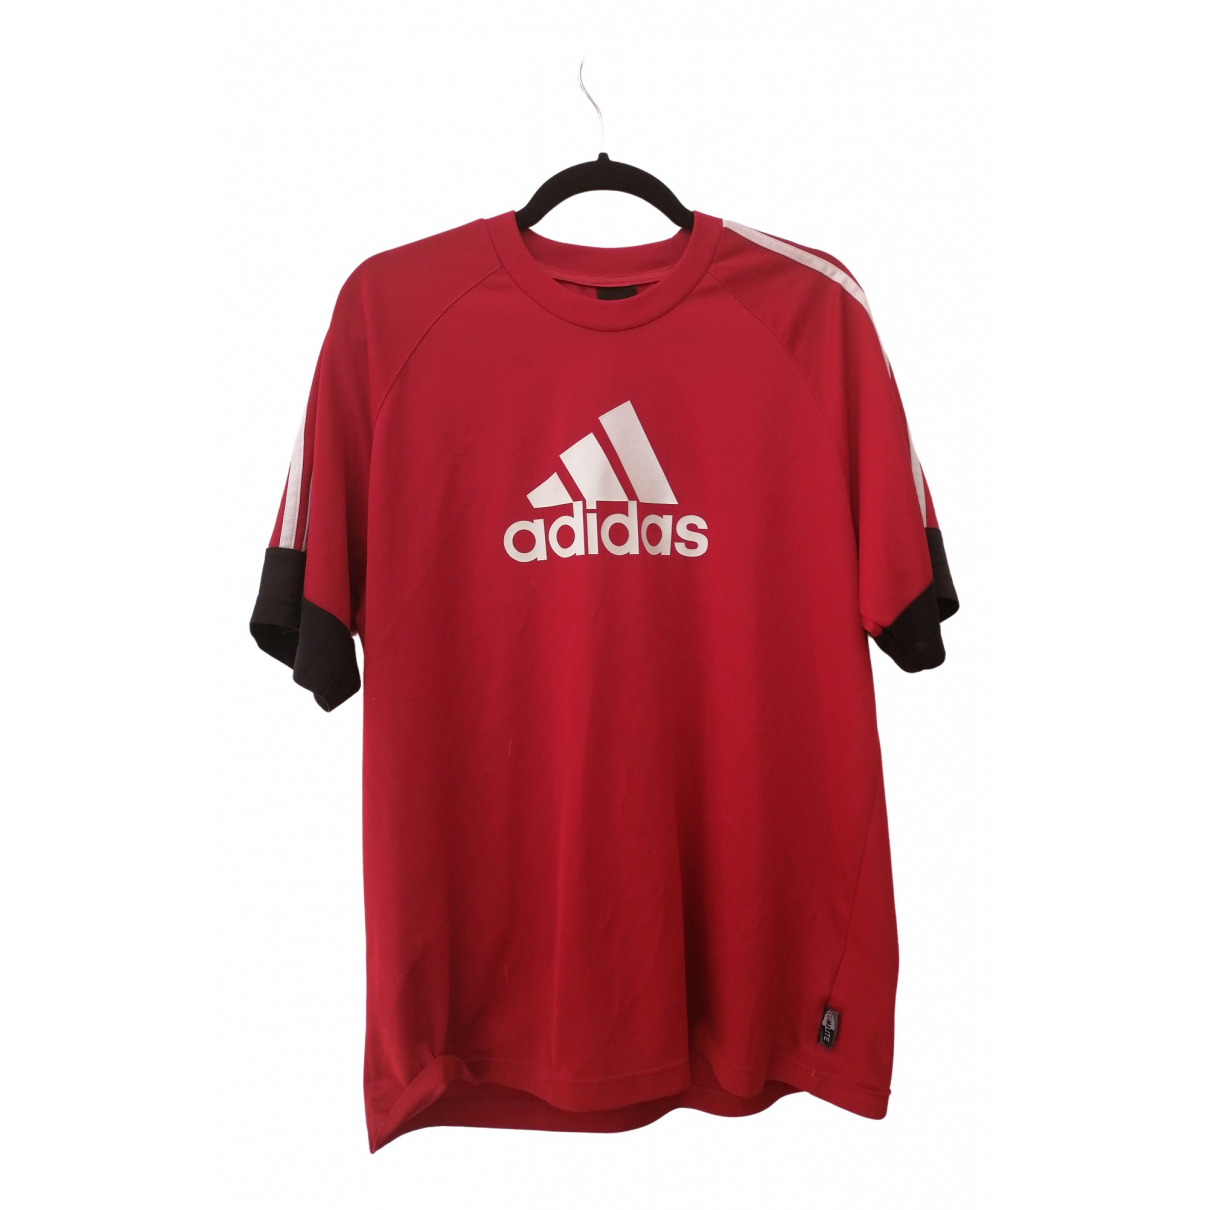 Adidas - Tee shirts   pour homme - rouge